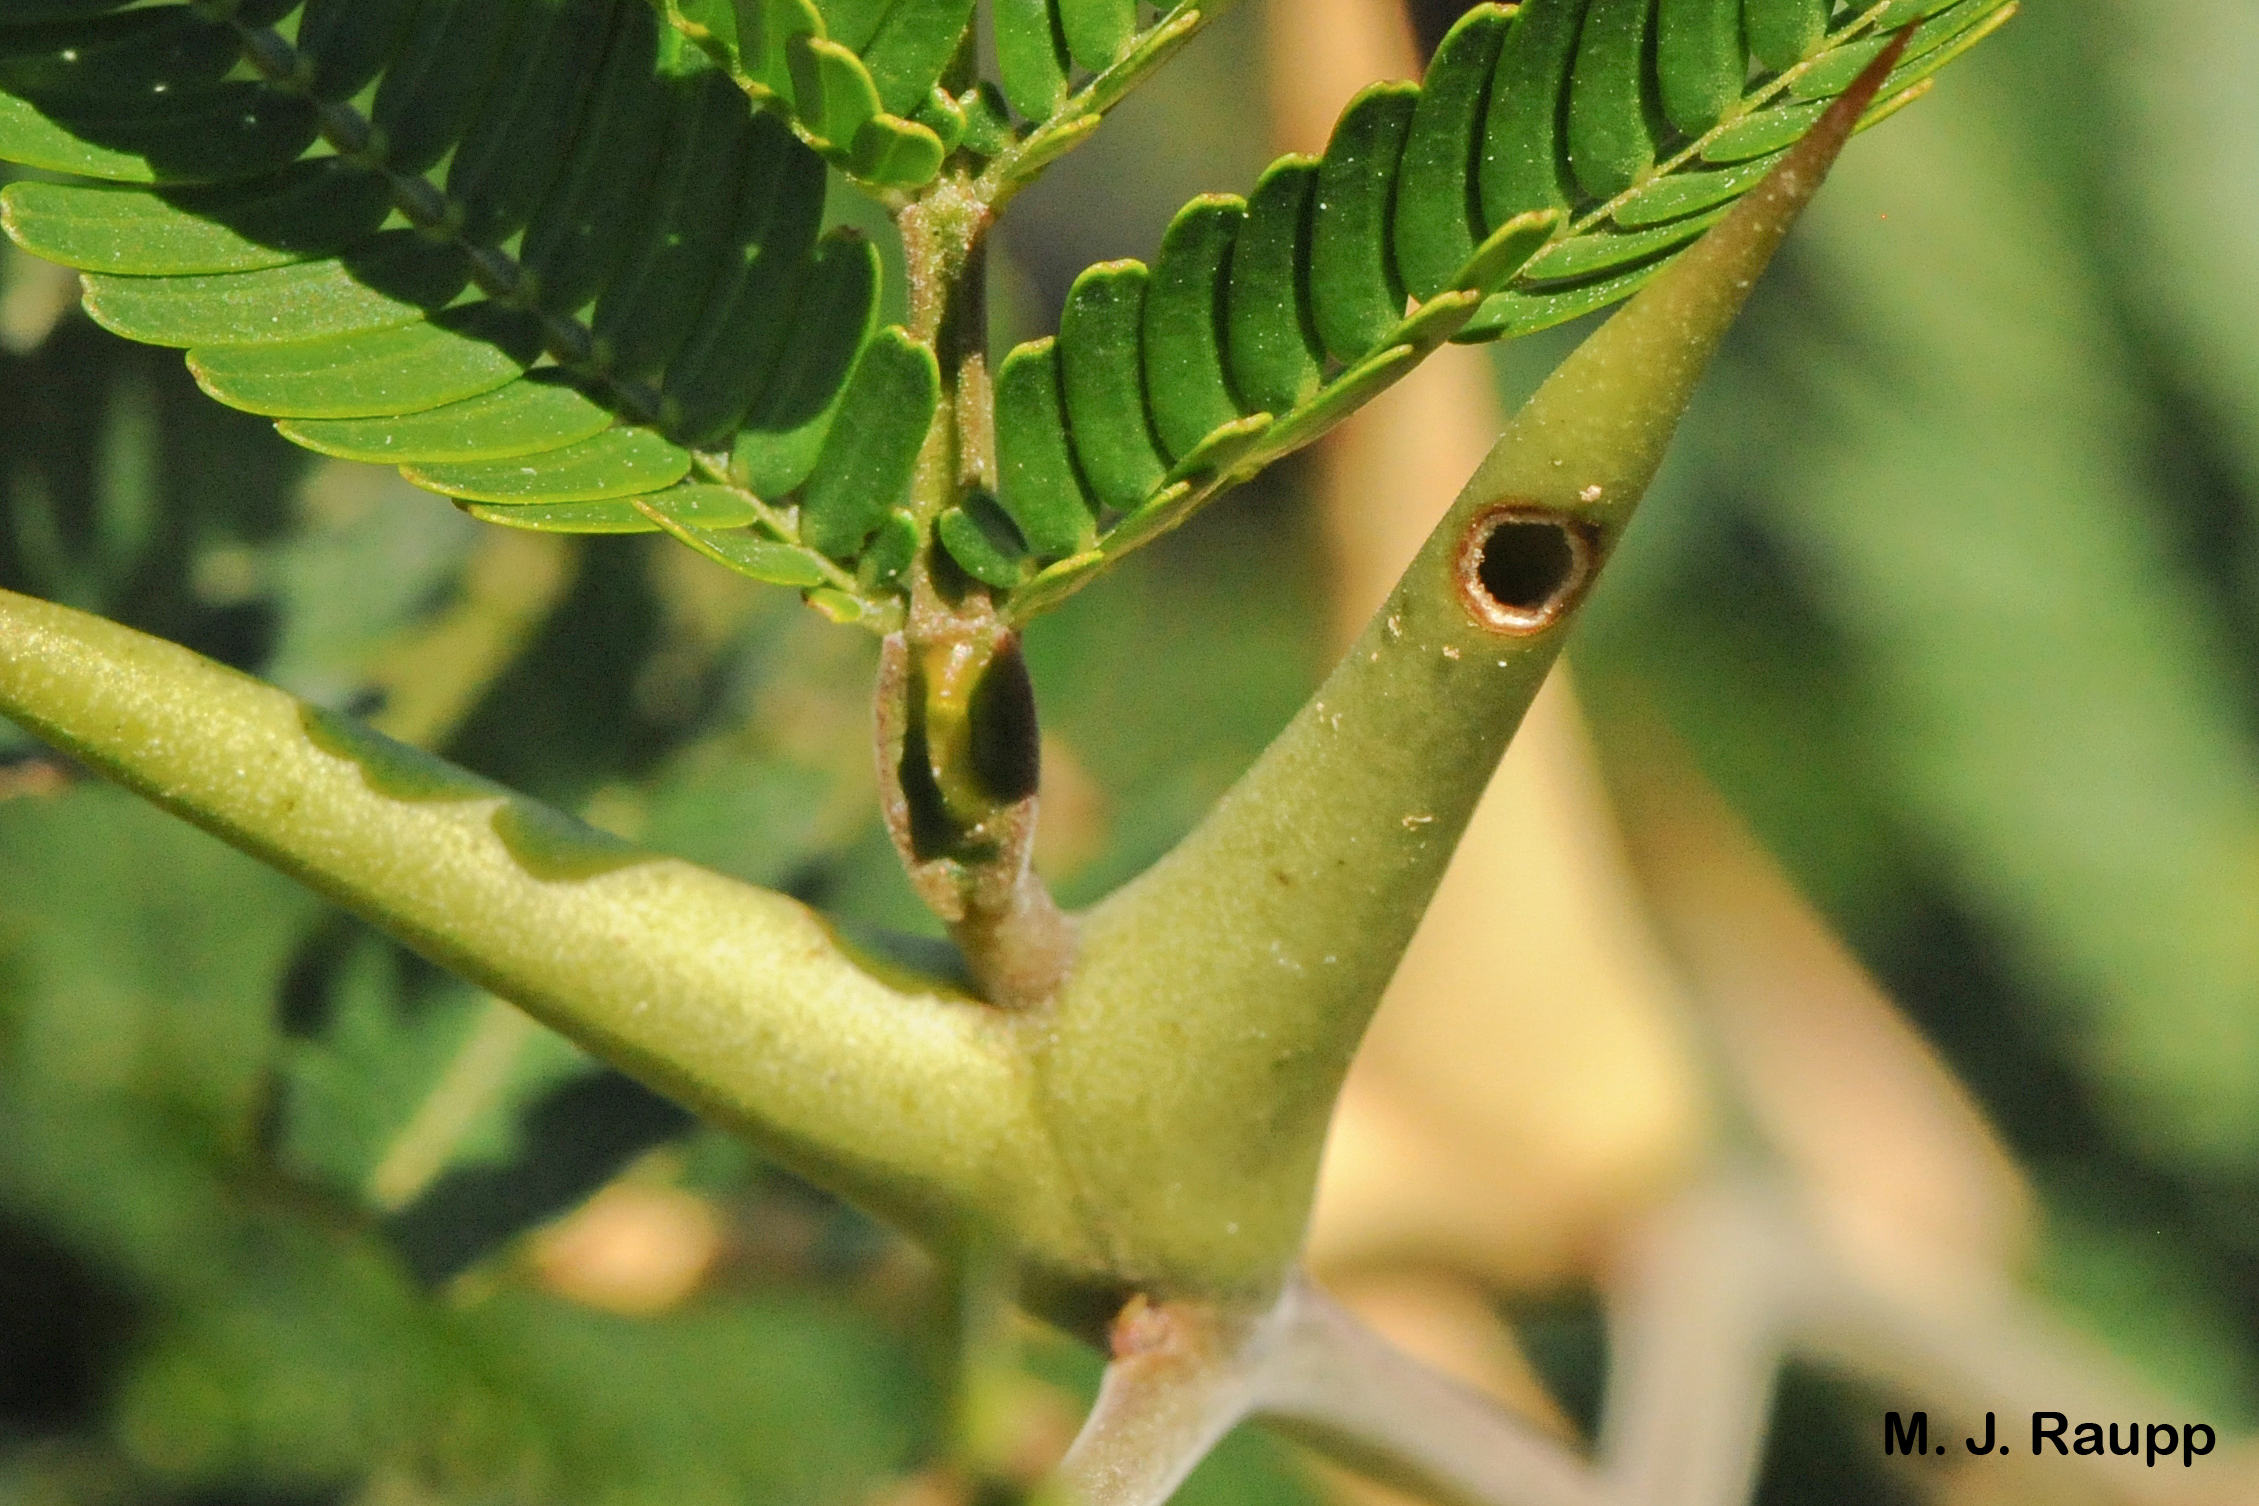 """Small holes in the Acacia thorn allow ants to enter and exit.          Normal   0           false   false   false     EN-US   X-NONE   X-NONE                                                                                                                                                                                                                                                                                                                                                                           /* Style Definitions */  table.MsoNormalTable {mso-style-name:""""Table Normal""""; mso-tstyle-rowband-size:0; mso-tstyle-colband-size:0; mso-style-noshow:yes; mso-style-priority:99; mso-style-parent:""""""""; mso-padding-alt:0in 5.4pt 0in 5.4pt; mso-para-margin-top:0in; mso-para-margin-right:0in; mso-para-margin-bottom:10.0pt; mso-para-margin-left:0in; line-height:115%; mso-pagination:widow-orphan; font-size:11.0pt; font-family:""""Calibri"""",""""sans-serif""""; mso-ascii-font-family:Calibri; mso-ascii-theme-font:minor-latin; mso-hansi-font-family:Calibri; mso-hansi-theme-font:minor-latin;}"""